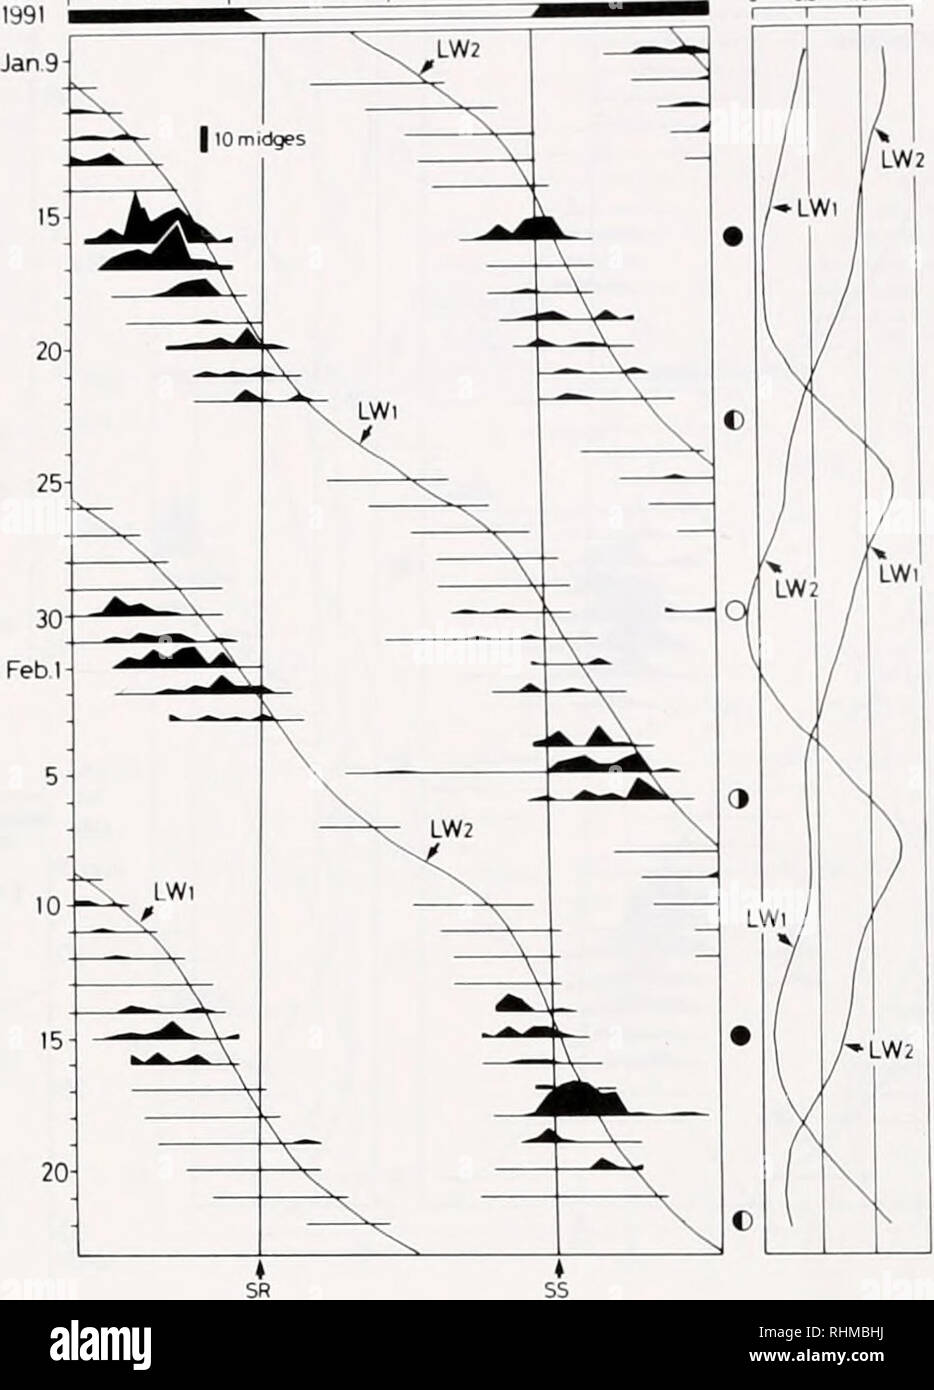 . The Biological bulletin. Biology; Zoology; Biology; Marine Biology. 21, Time of day 0 18 Tide height (m) 0 05 10 15. Figure 4. Daily timing of emergence of Clunio tsushimensis males in relation to day-night, tidal, and lunar cycles. (Left) The record from 28 October to 25 November 1990. Midges were collected using a light trap method. The number of midges is plotted vertically on the horizontal lines, which also show the 5-min period every 30 min (dot) during which sampling was done. Absence of the horizontal bars indicates no sampling. 55 and SR represent the times of sunset and sunrise, re - Stock Image